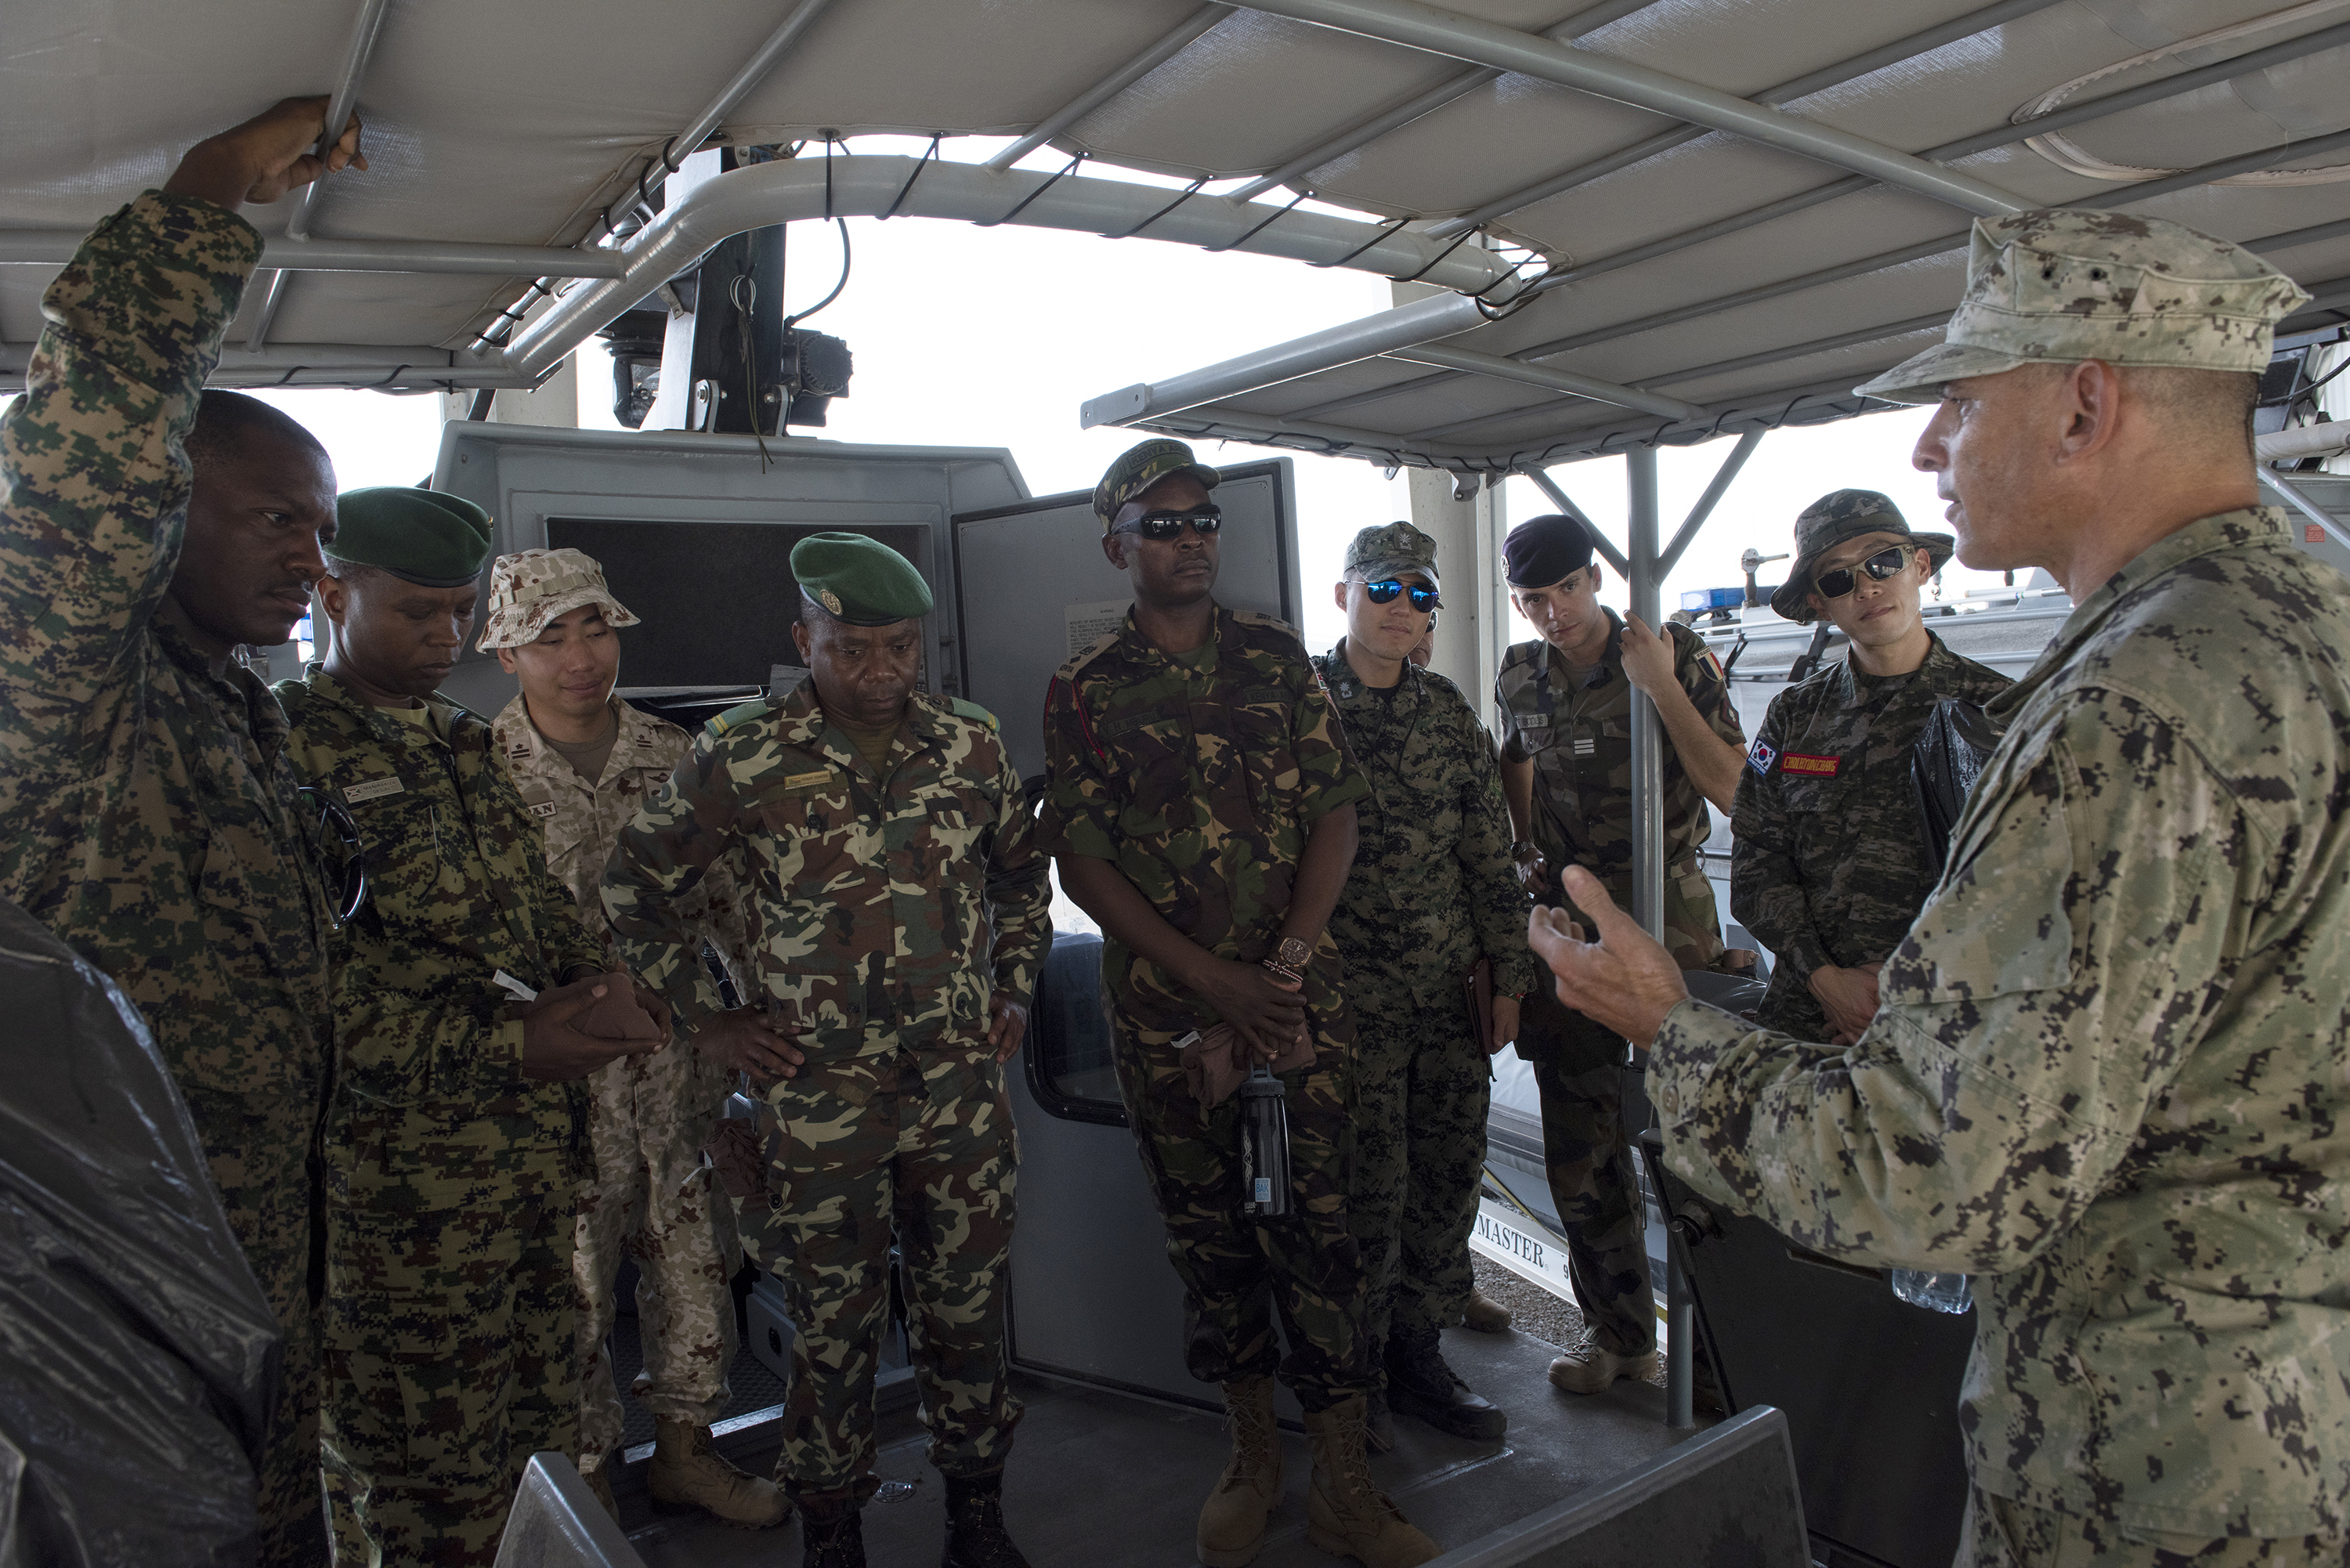 U.S. Navy Boatswain 1st Class Antonio Caia with Coastal Riverine Squadron (CRS) 8, briefs foreign liaison officers assigned to Combined Joint Task Force-Horn of Africa on Camp Lemonnier, Djibouti, Sept. 14, 2018. Caia spoke about the type of patrol boat that CRS 8 uses and gave them a tour of the boat. (U.S. Air National Guard photo by Master Sgt. Sarah Mattison)